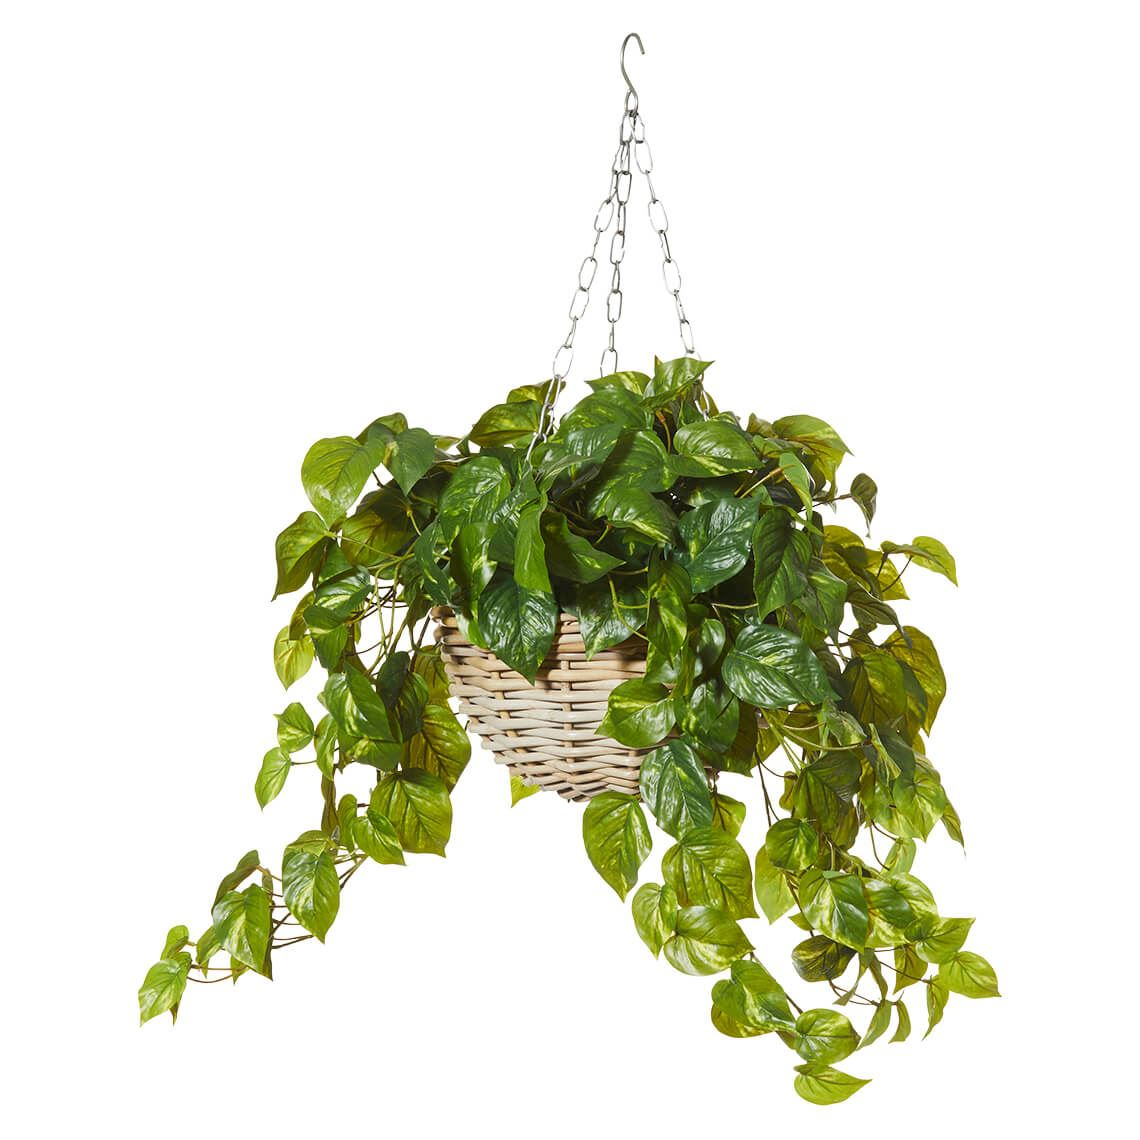 Rattan Hanging Bowl And Artificial Plant Size W 60cm x D 60cm x H 85cm in Green Plastic/Wire Freedom